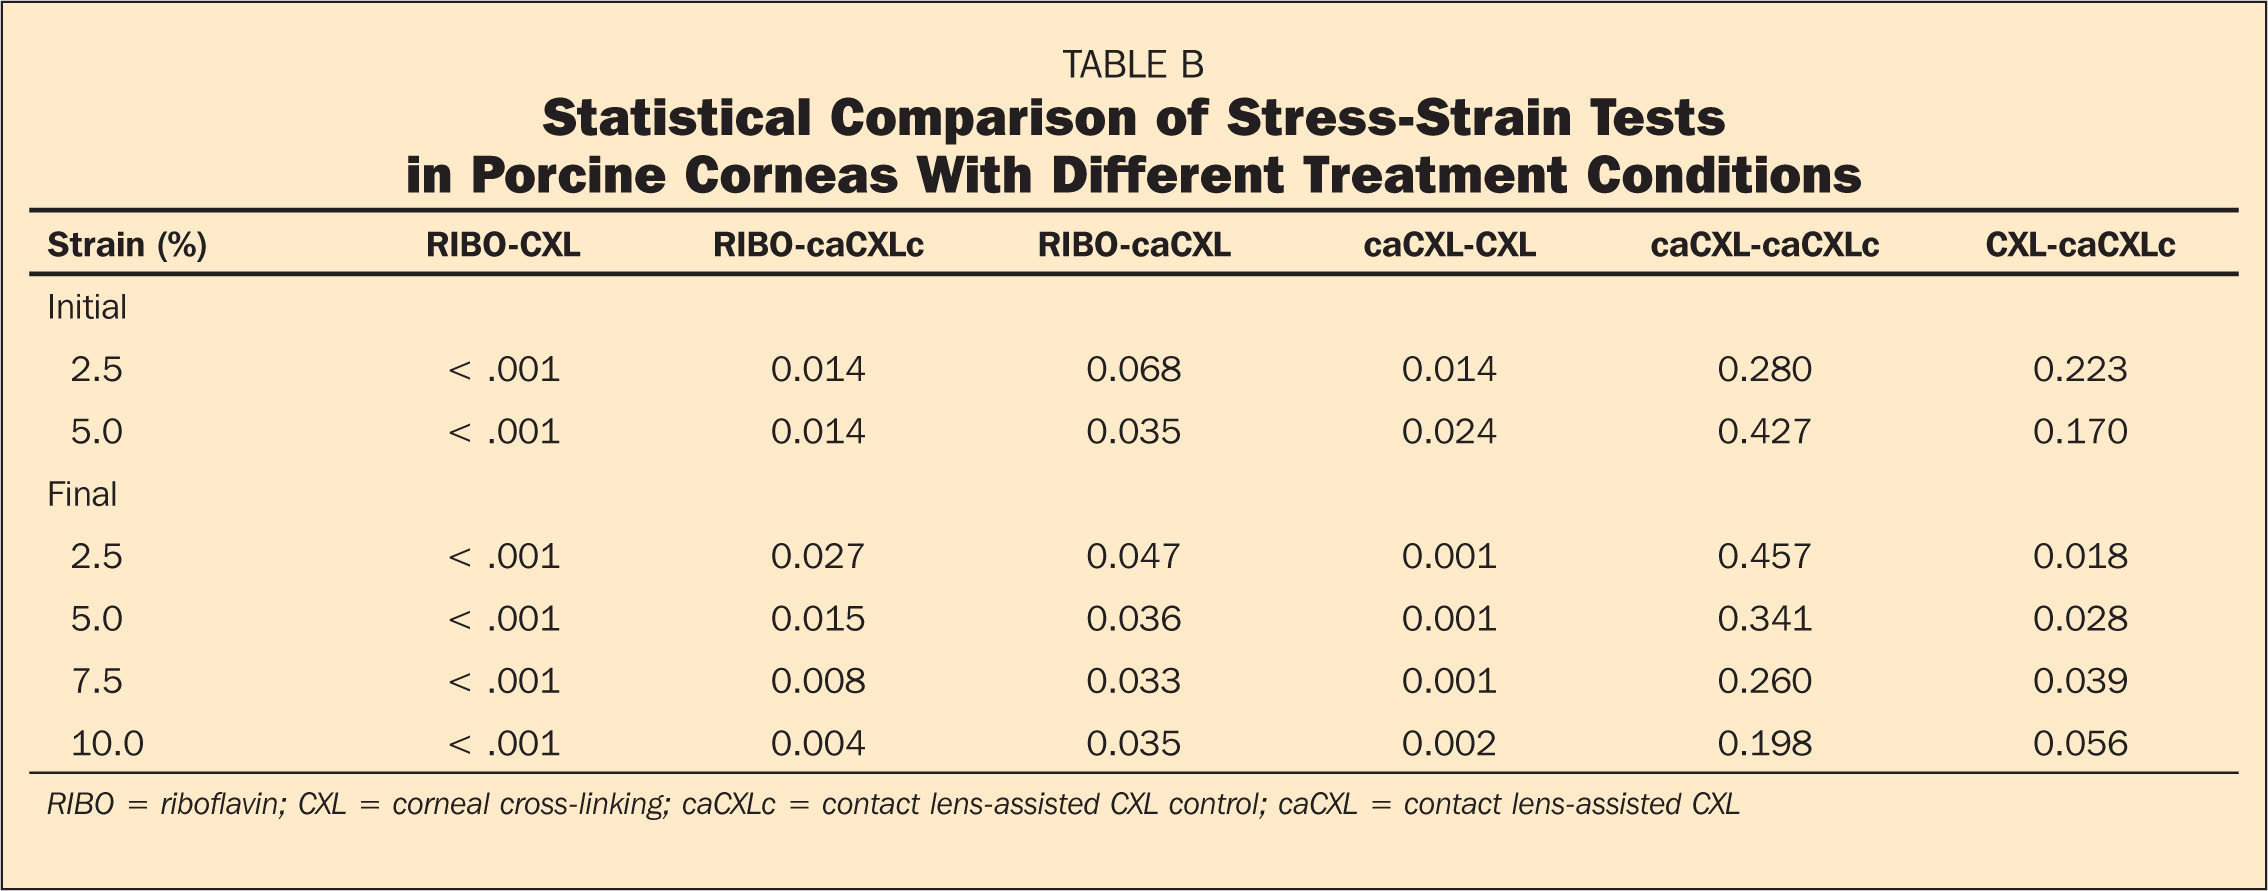 Statistical Comparison of Stress-Strain Tests in Porcine Corneas With Different Treatment Conditions